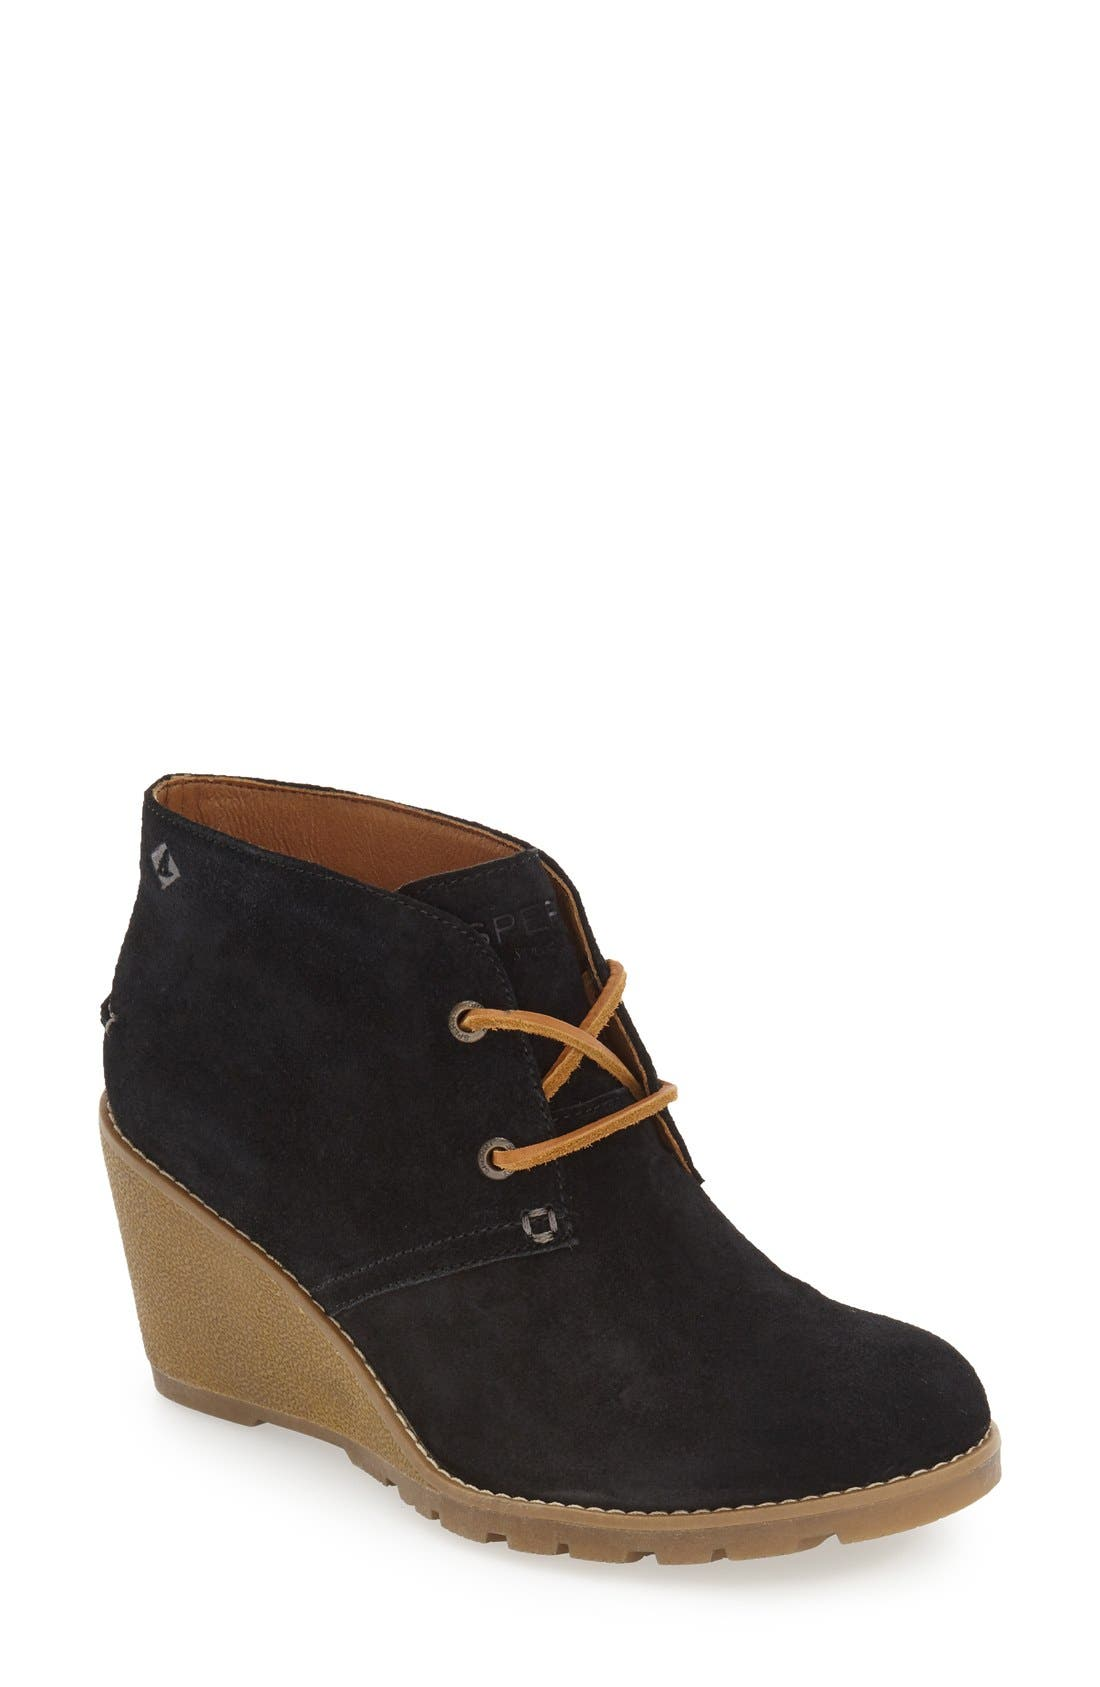 sperry stella prow wedge chukka boot nordstrom